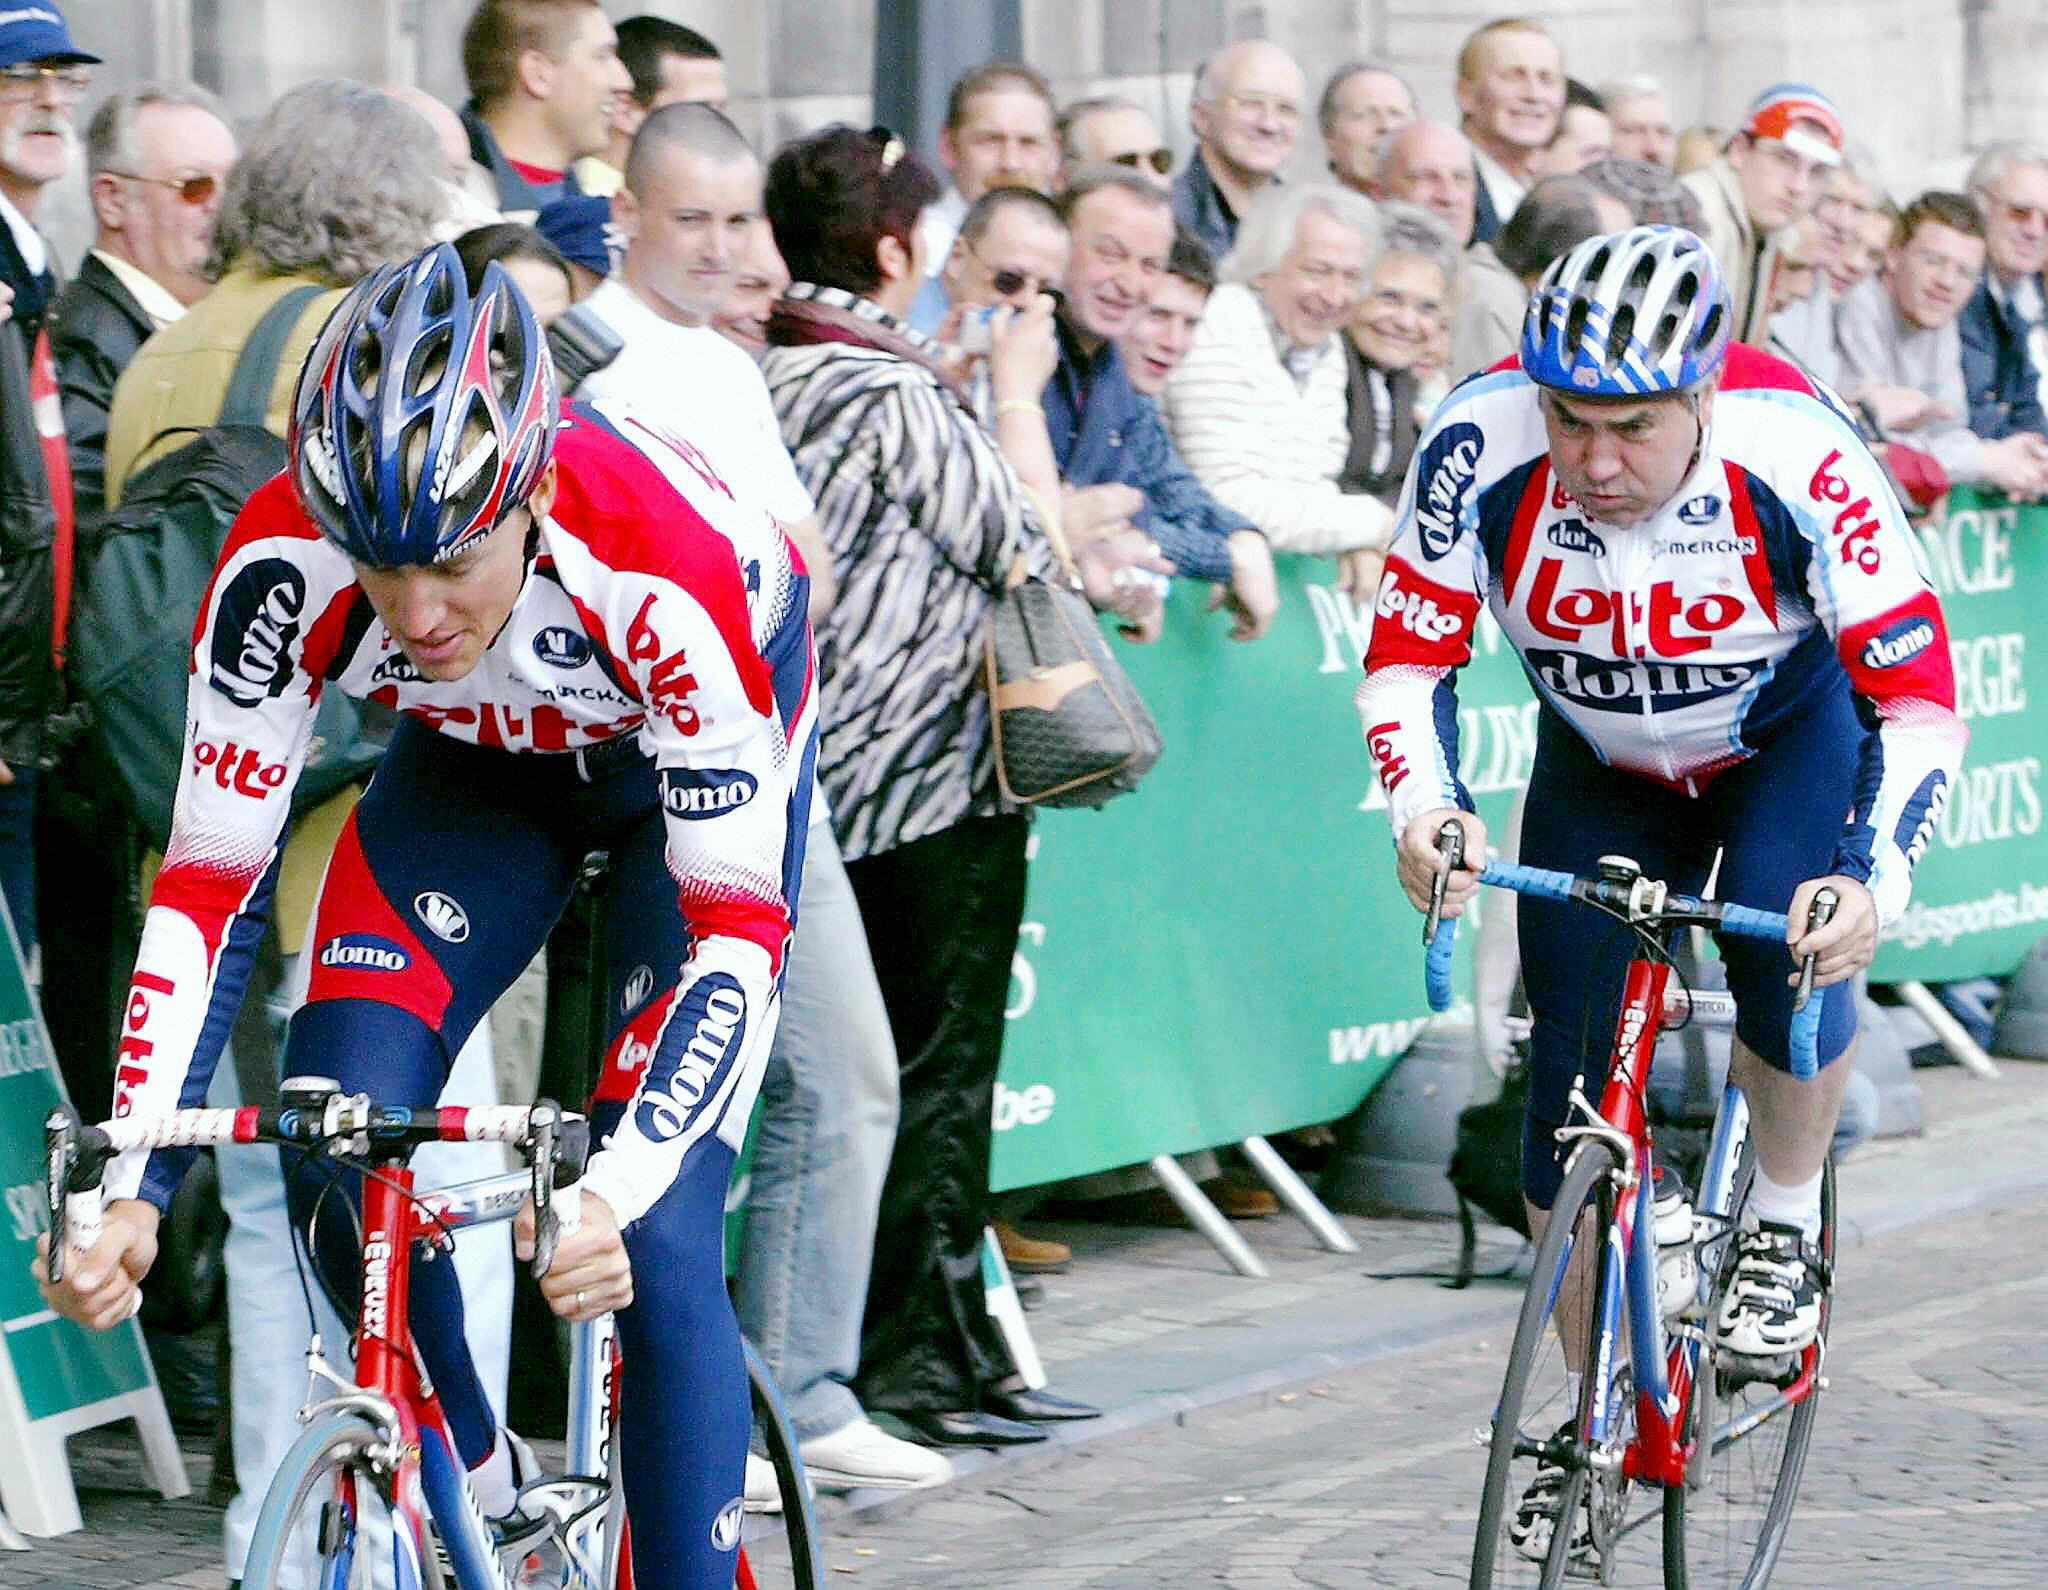 After several years on the Nelson Plan, Eddy Merckx was able to shield son Axel from a tailwind.